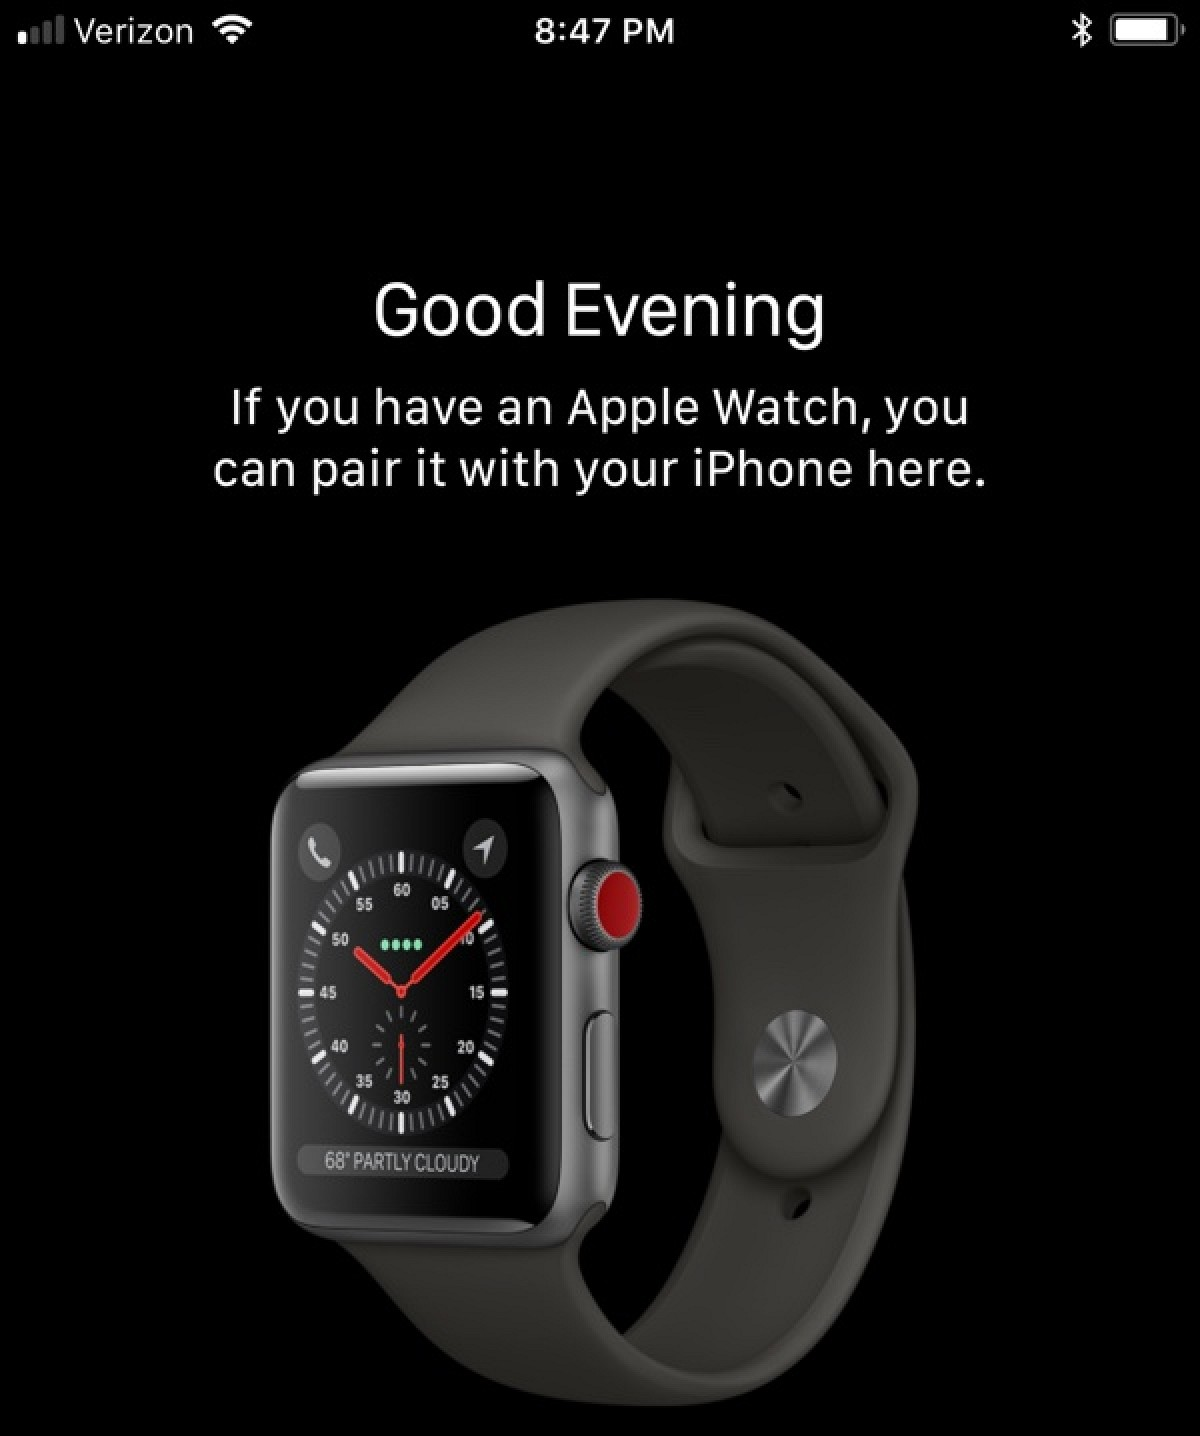 Apple Watch Series 3 revealed with built-in cellular connectivity